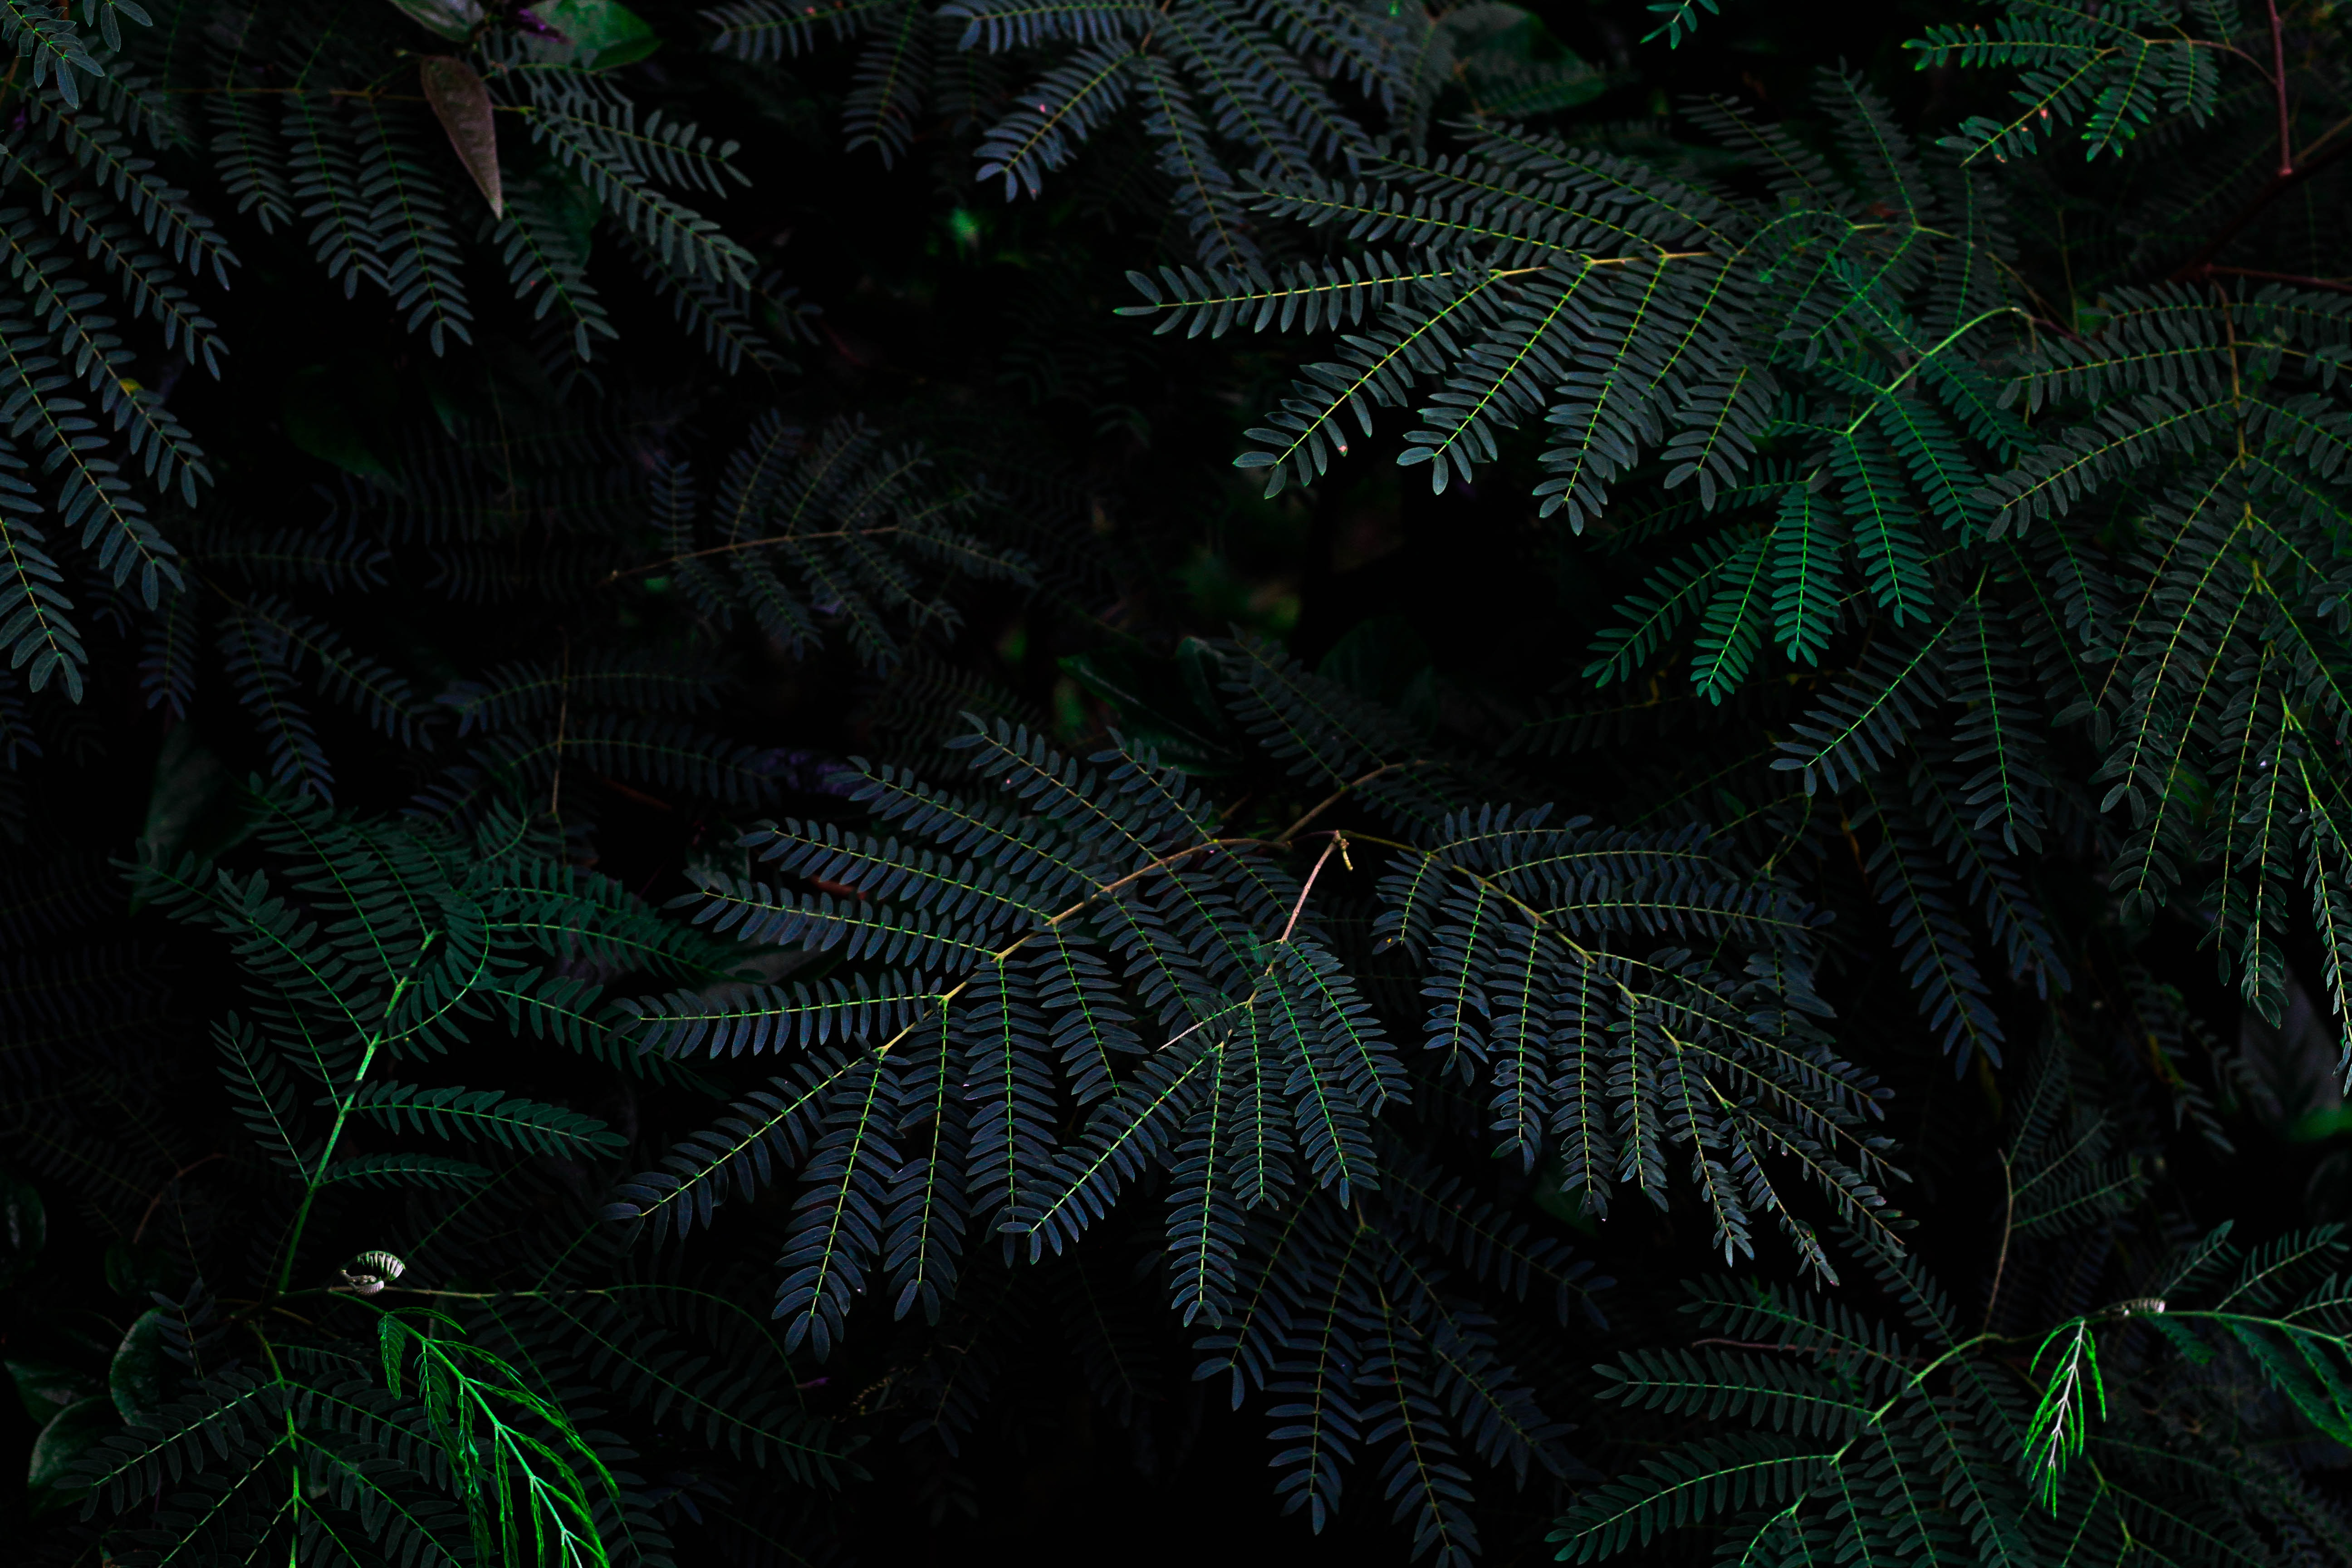 Up close photo of dark green pine tree limbs in a forest